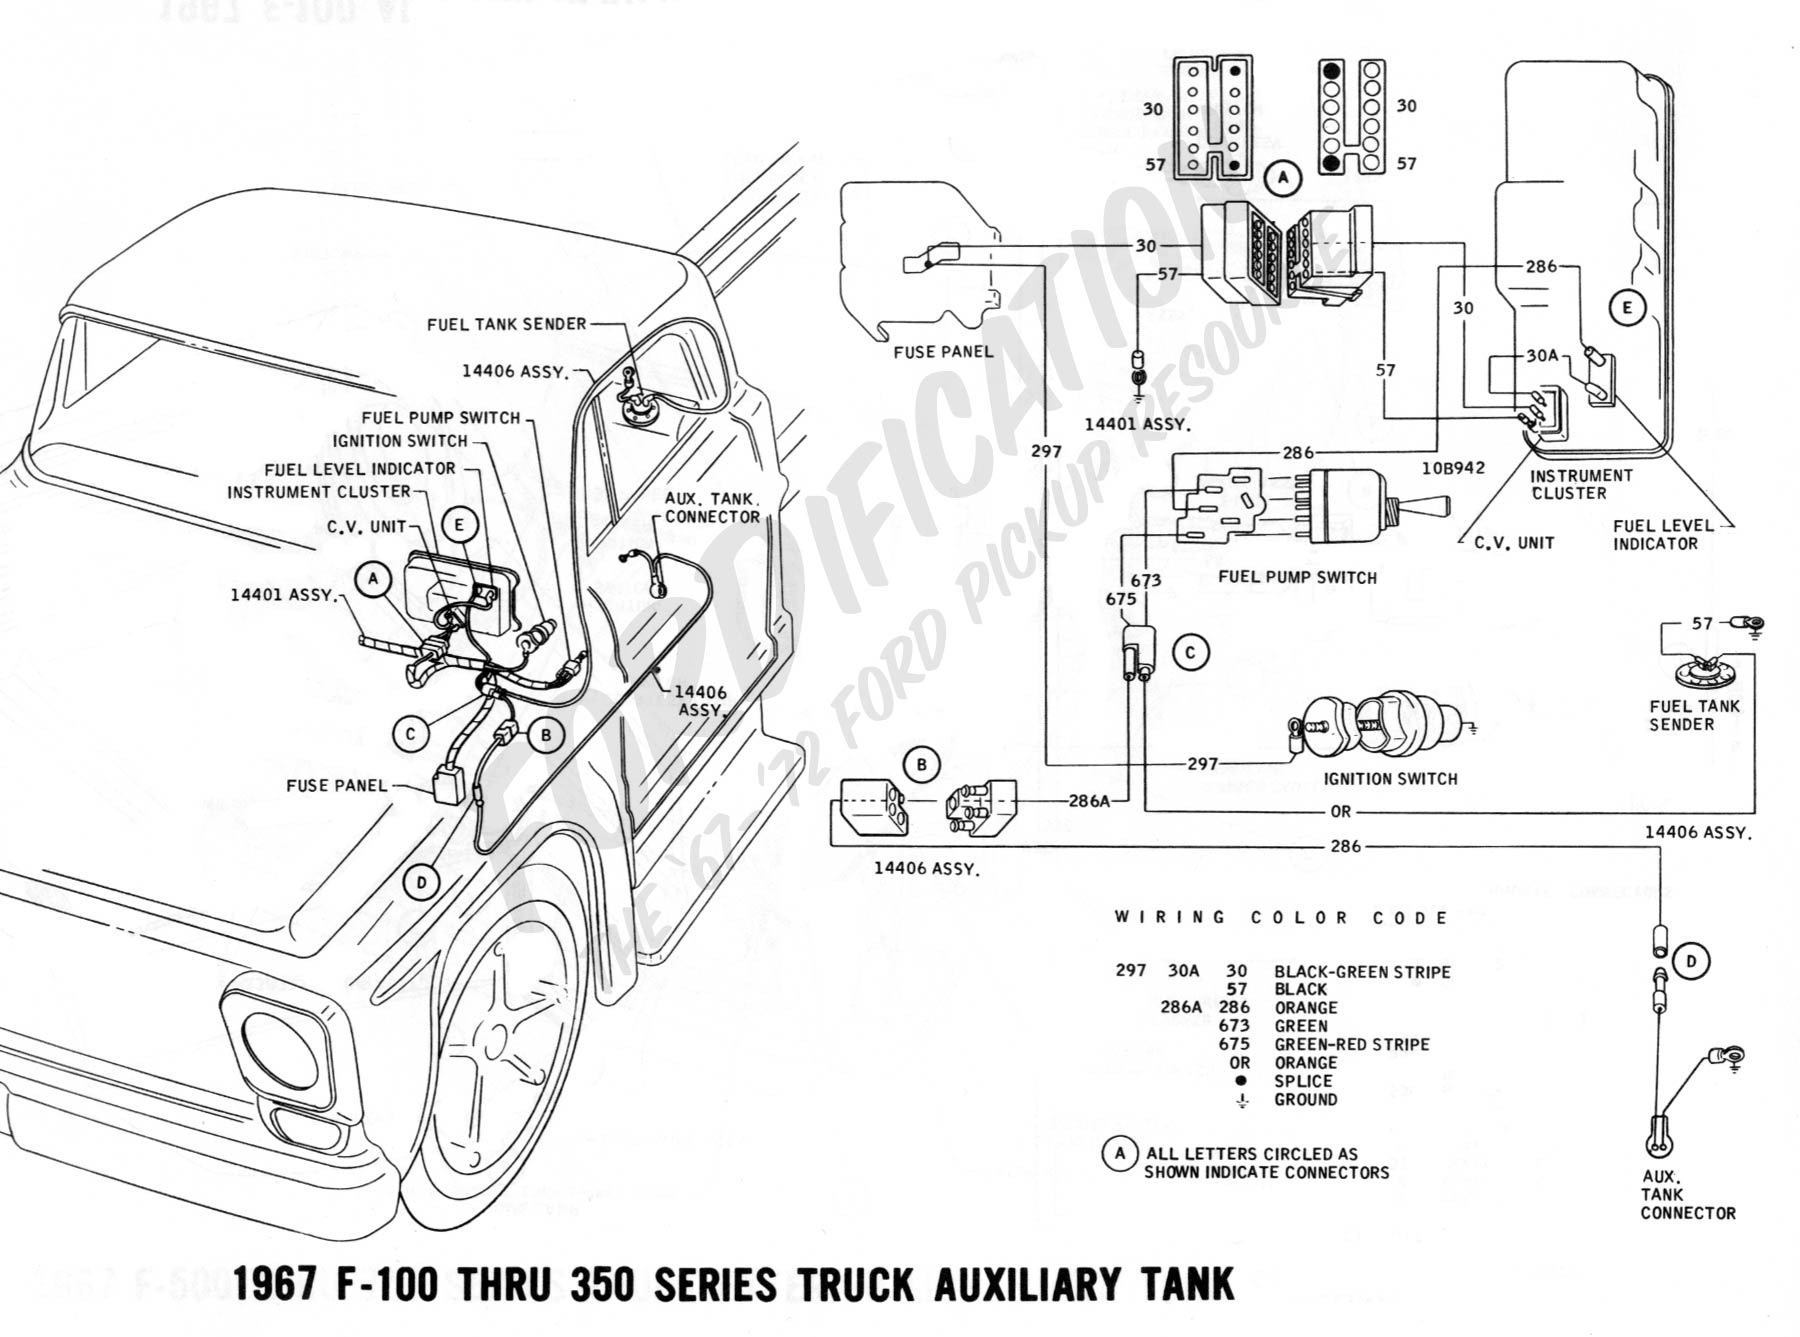 Schematics h on fuel tank level sending unit